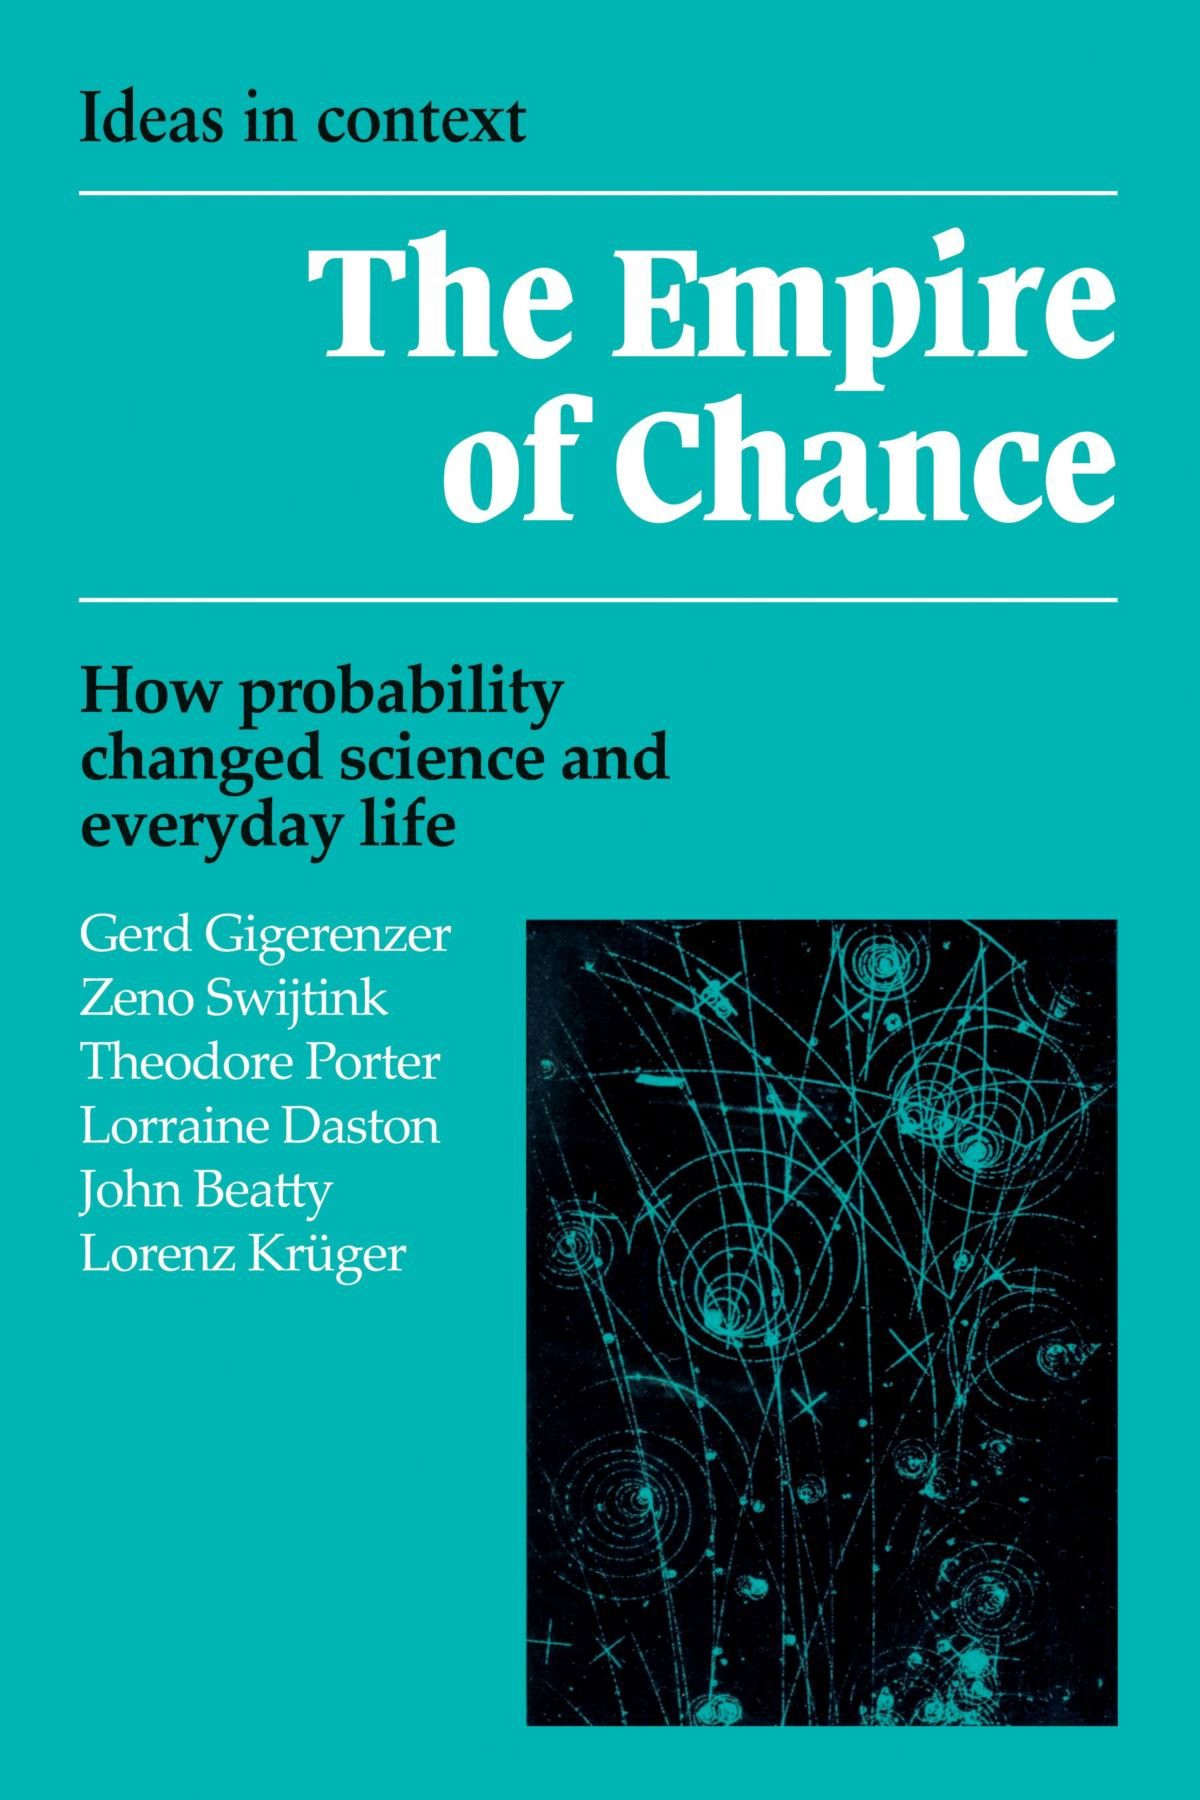 The Empire of Chance: How probability changed science & everyday life